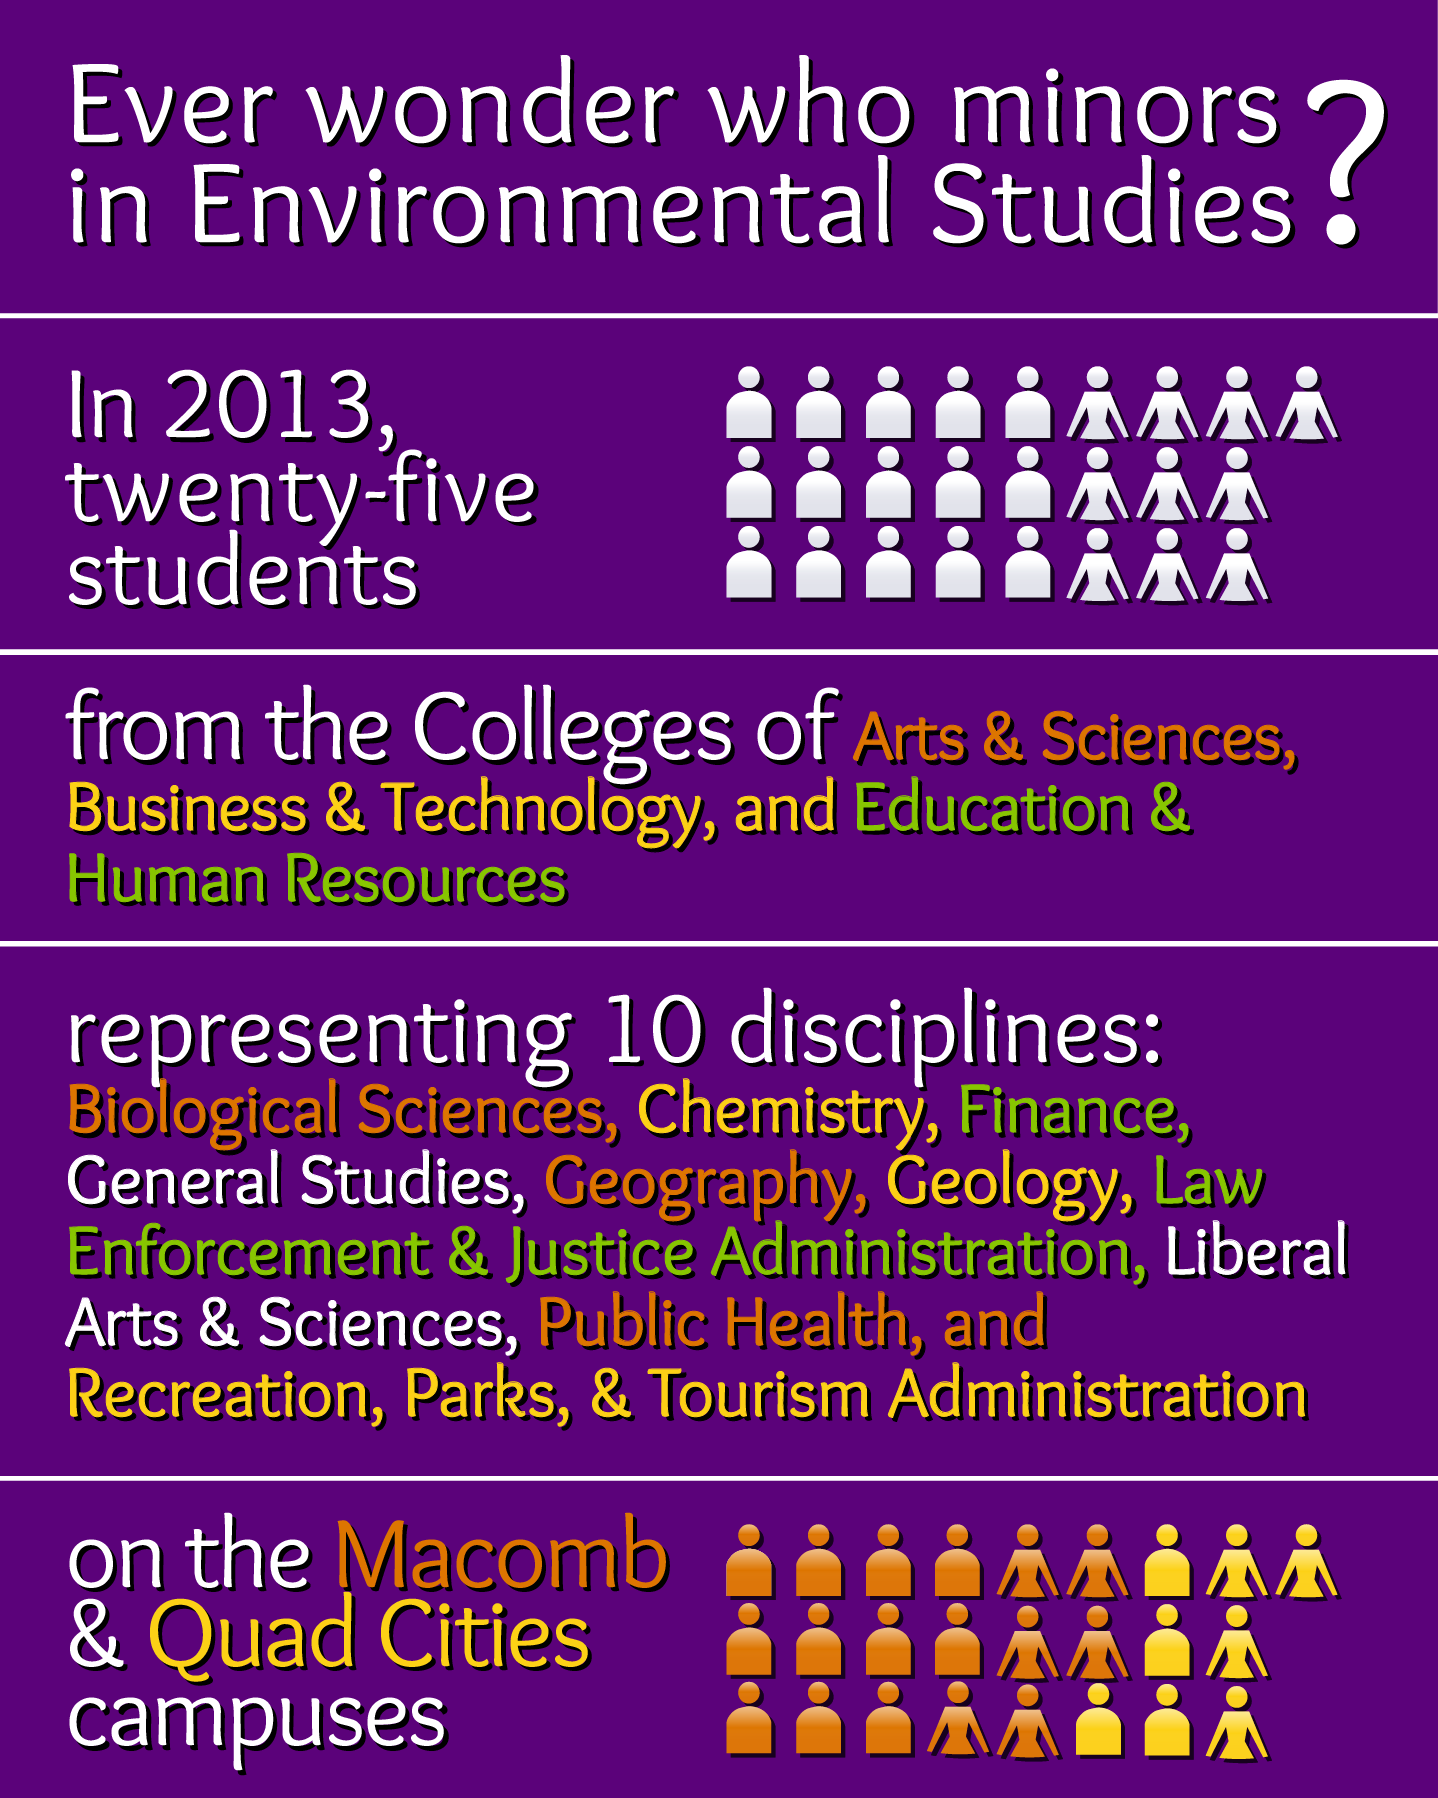 Summary of environmental studies minors, 2013.